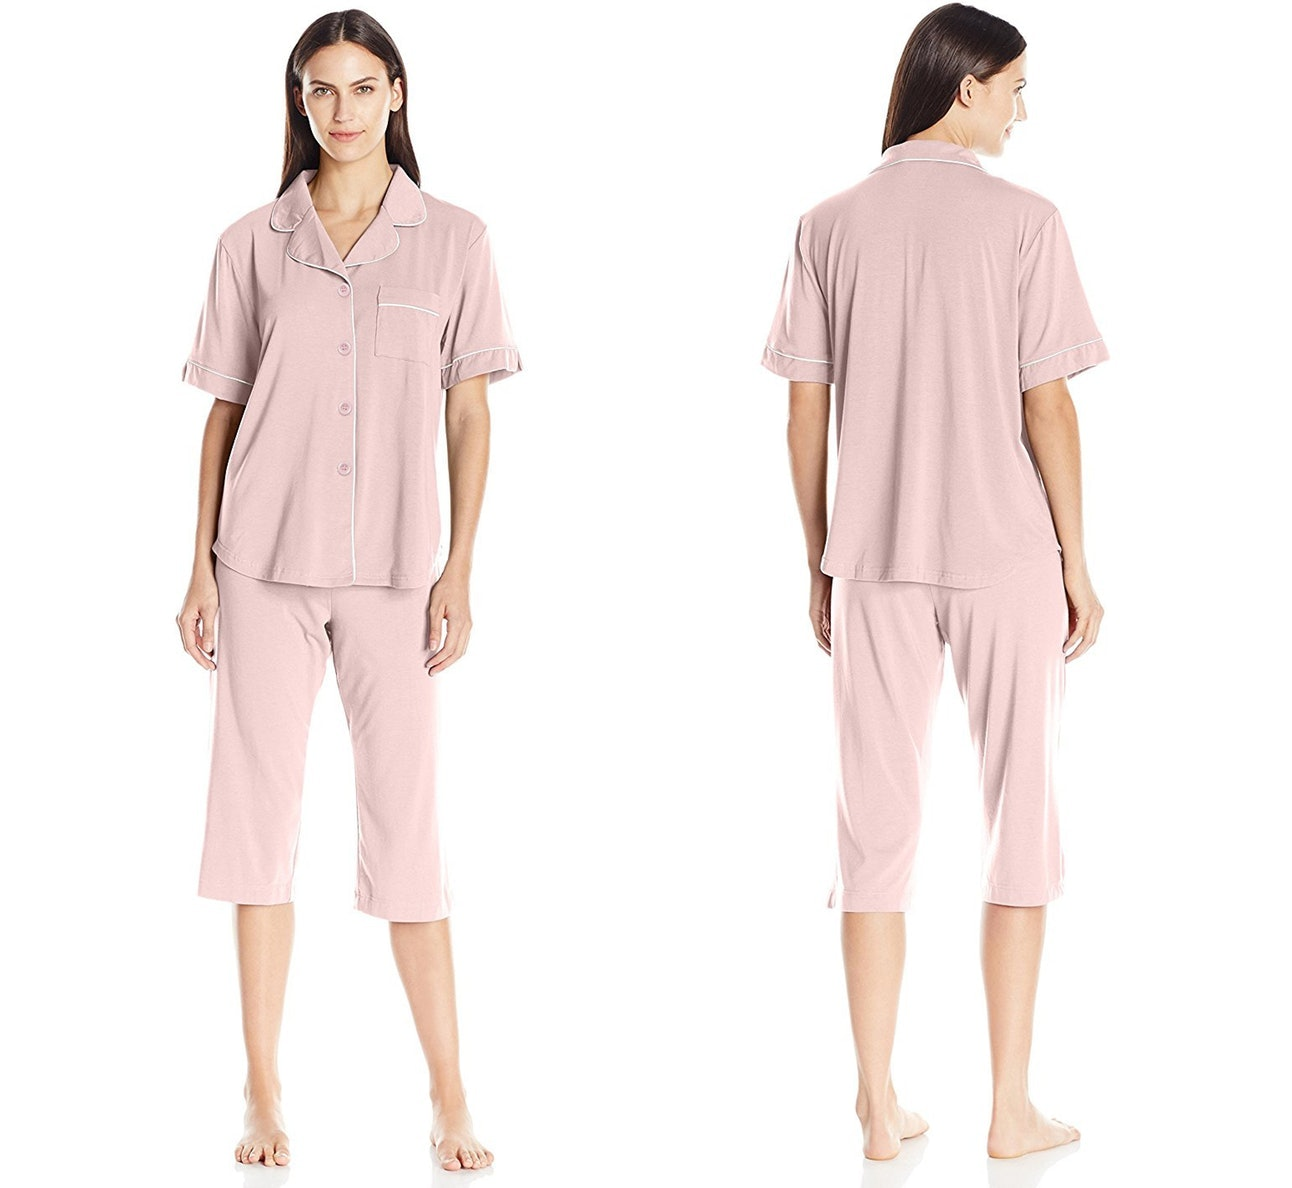 b0a6e3fec The 16 Best Pajamas To Keep Sweaty Sleepers Cool